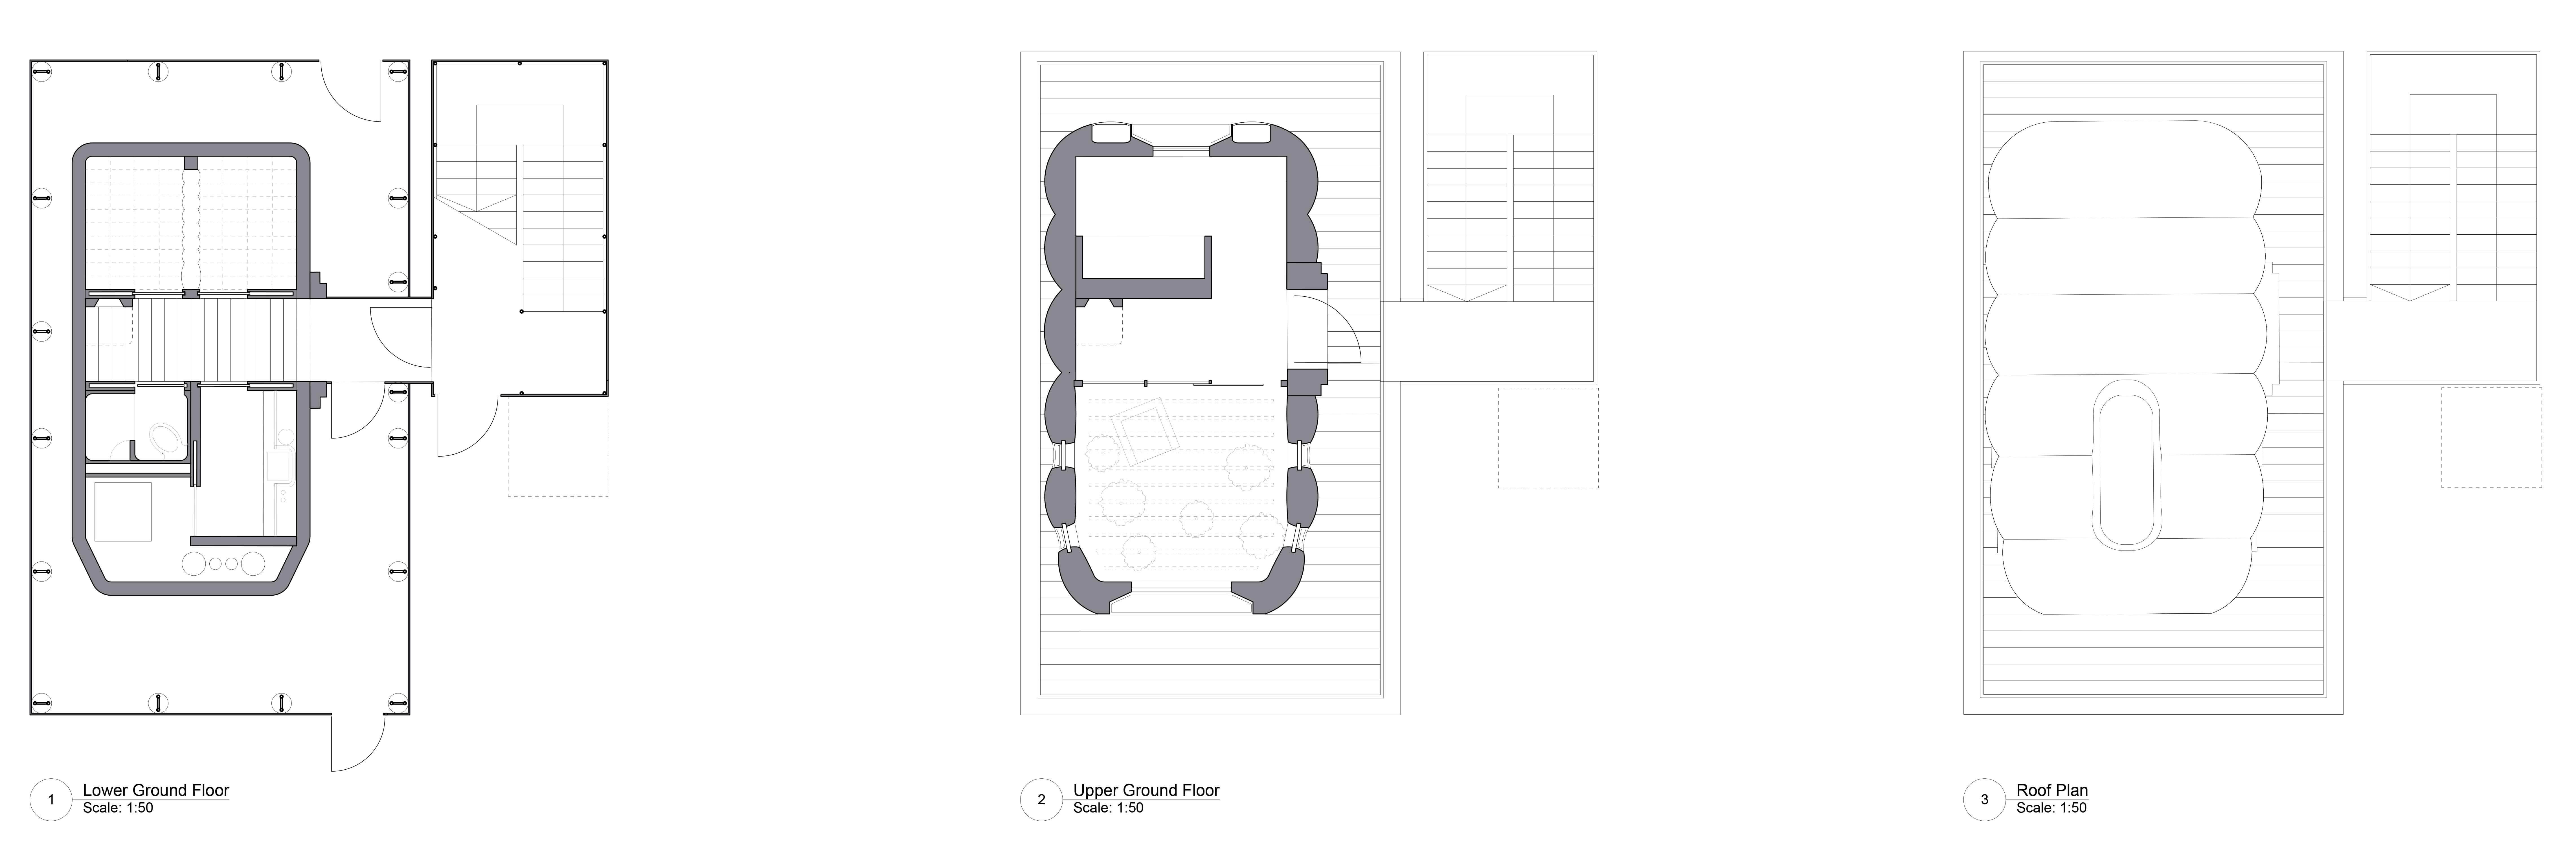 Layout Plans | Hugh Broughton Architects | Bristol | STIRworld